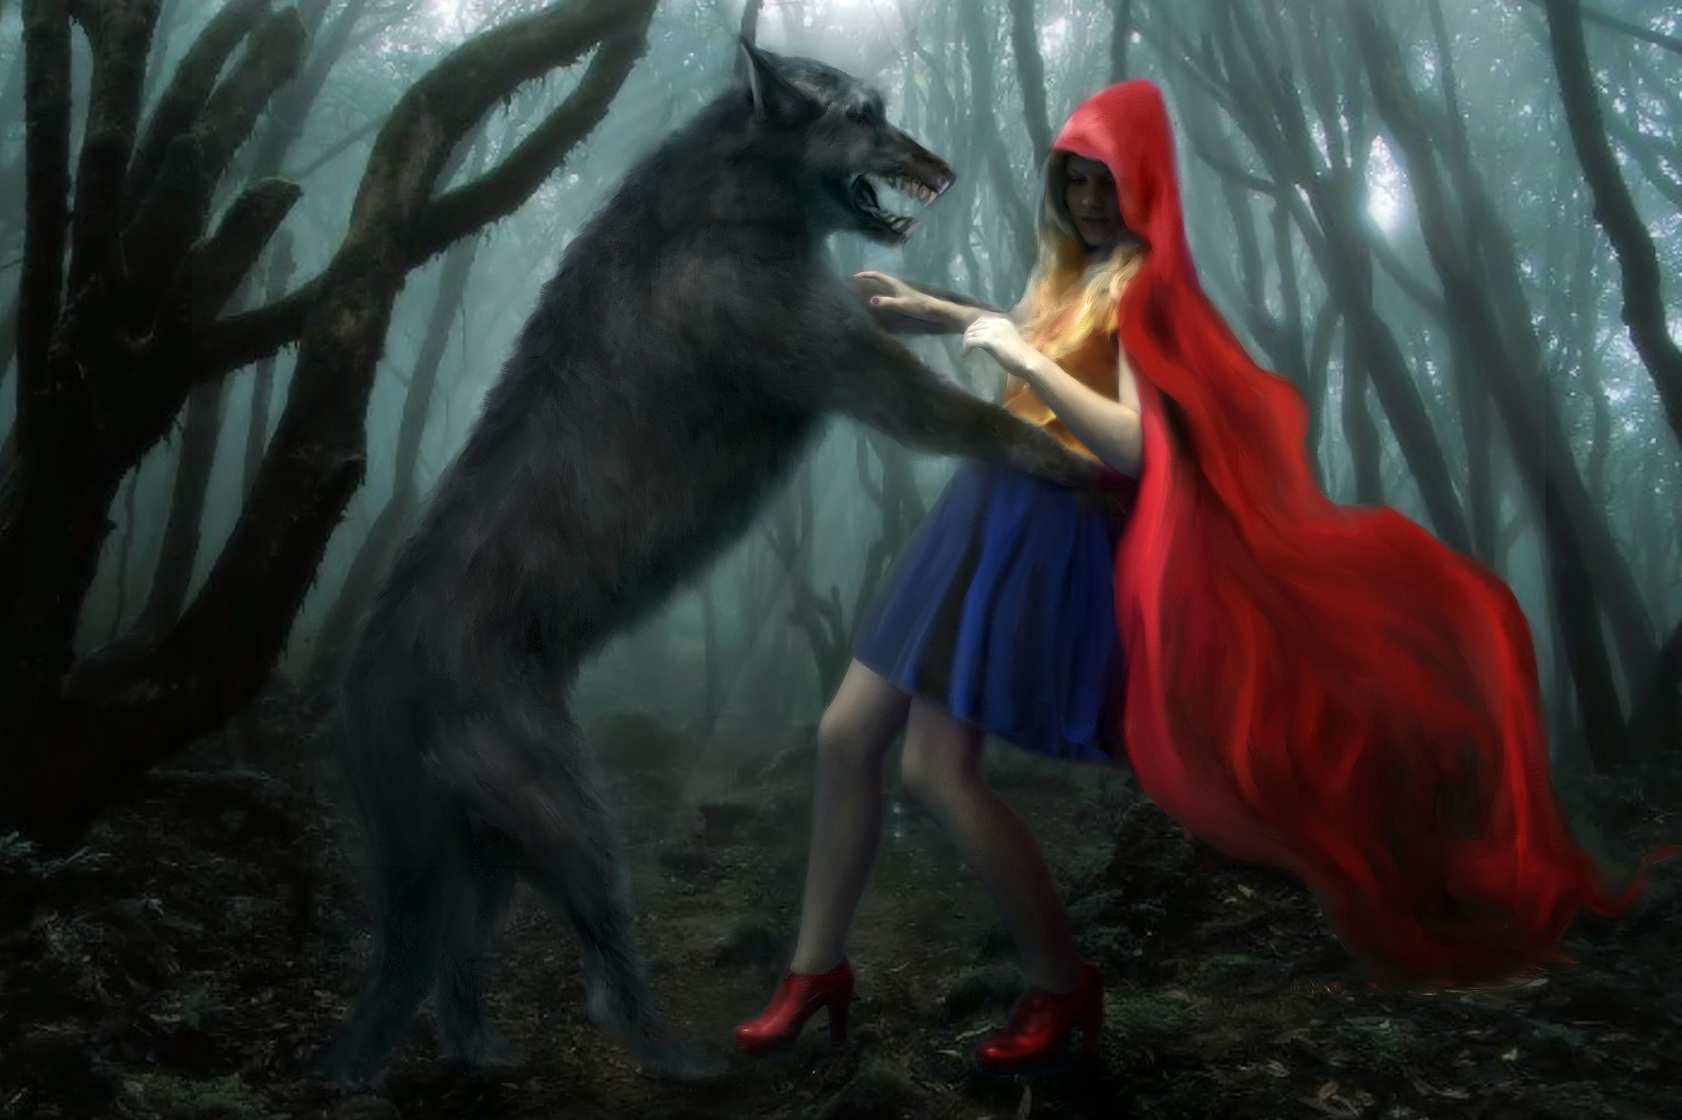 wolf attacks Little Red